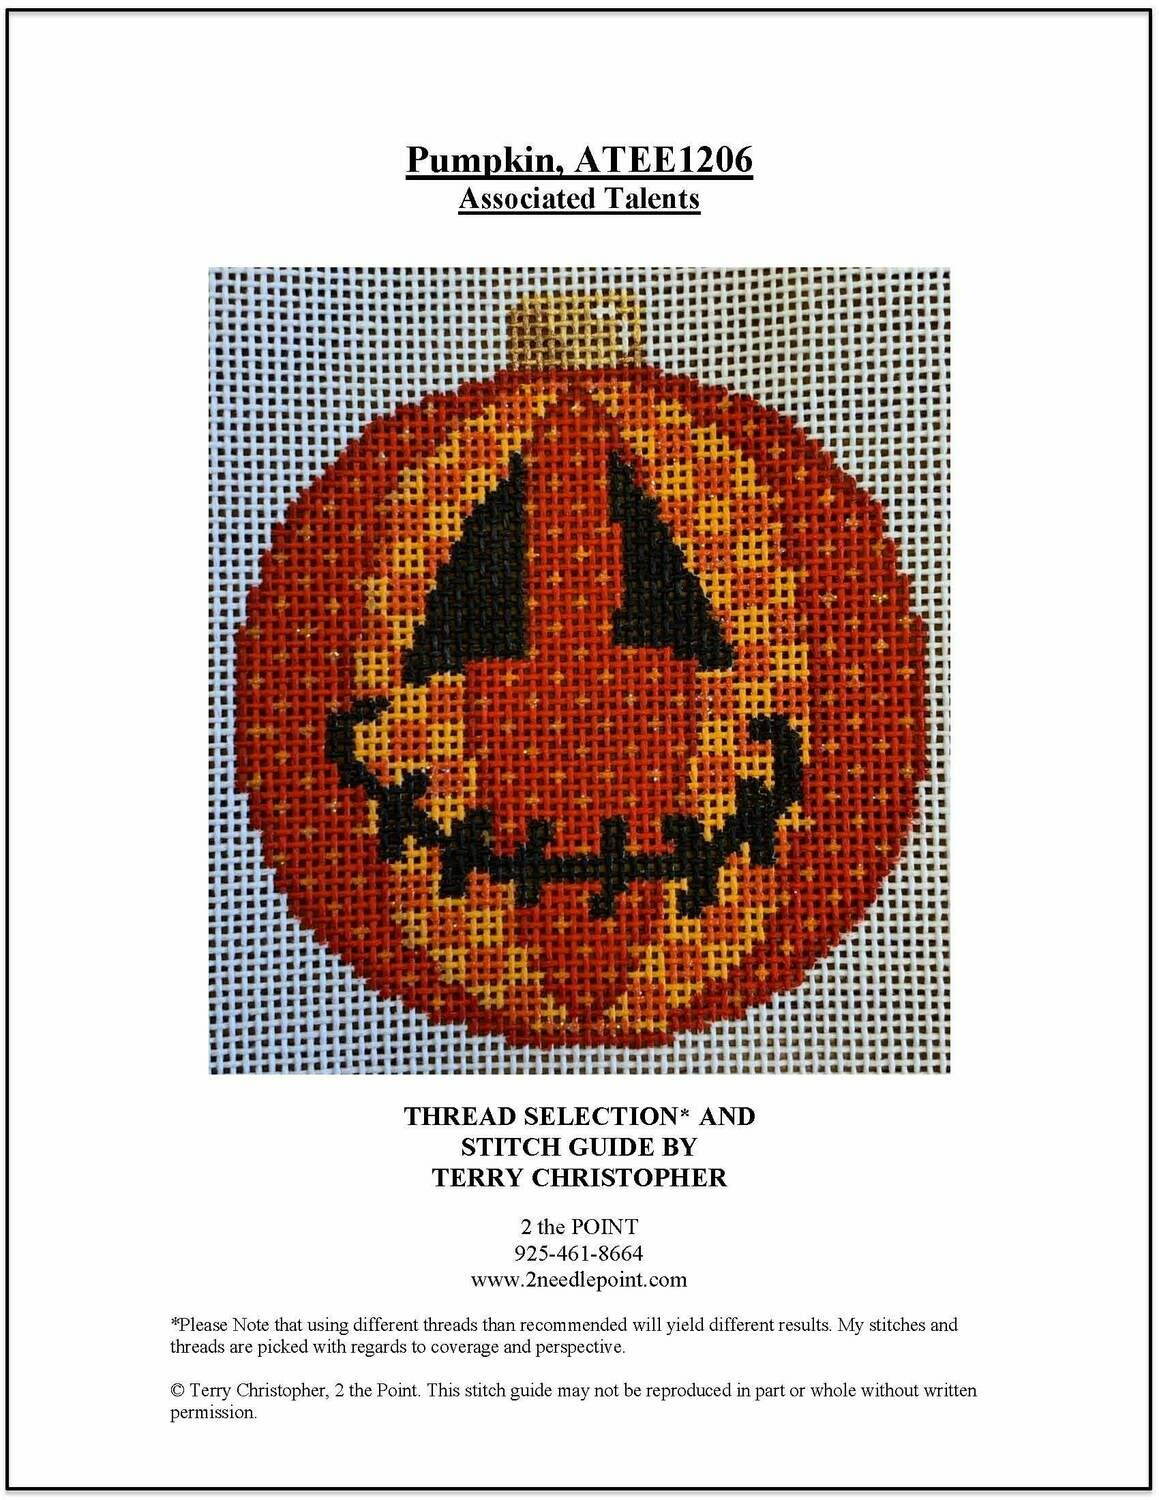 Associated Talents, Pumpkin ATEE1206